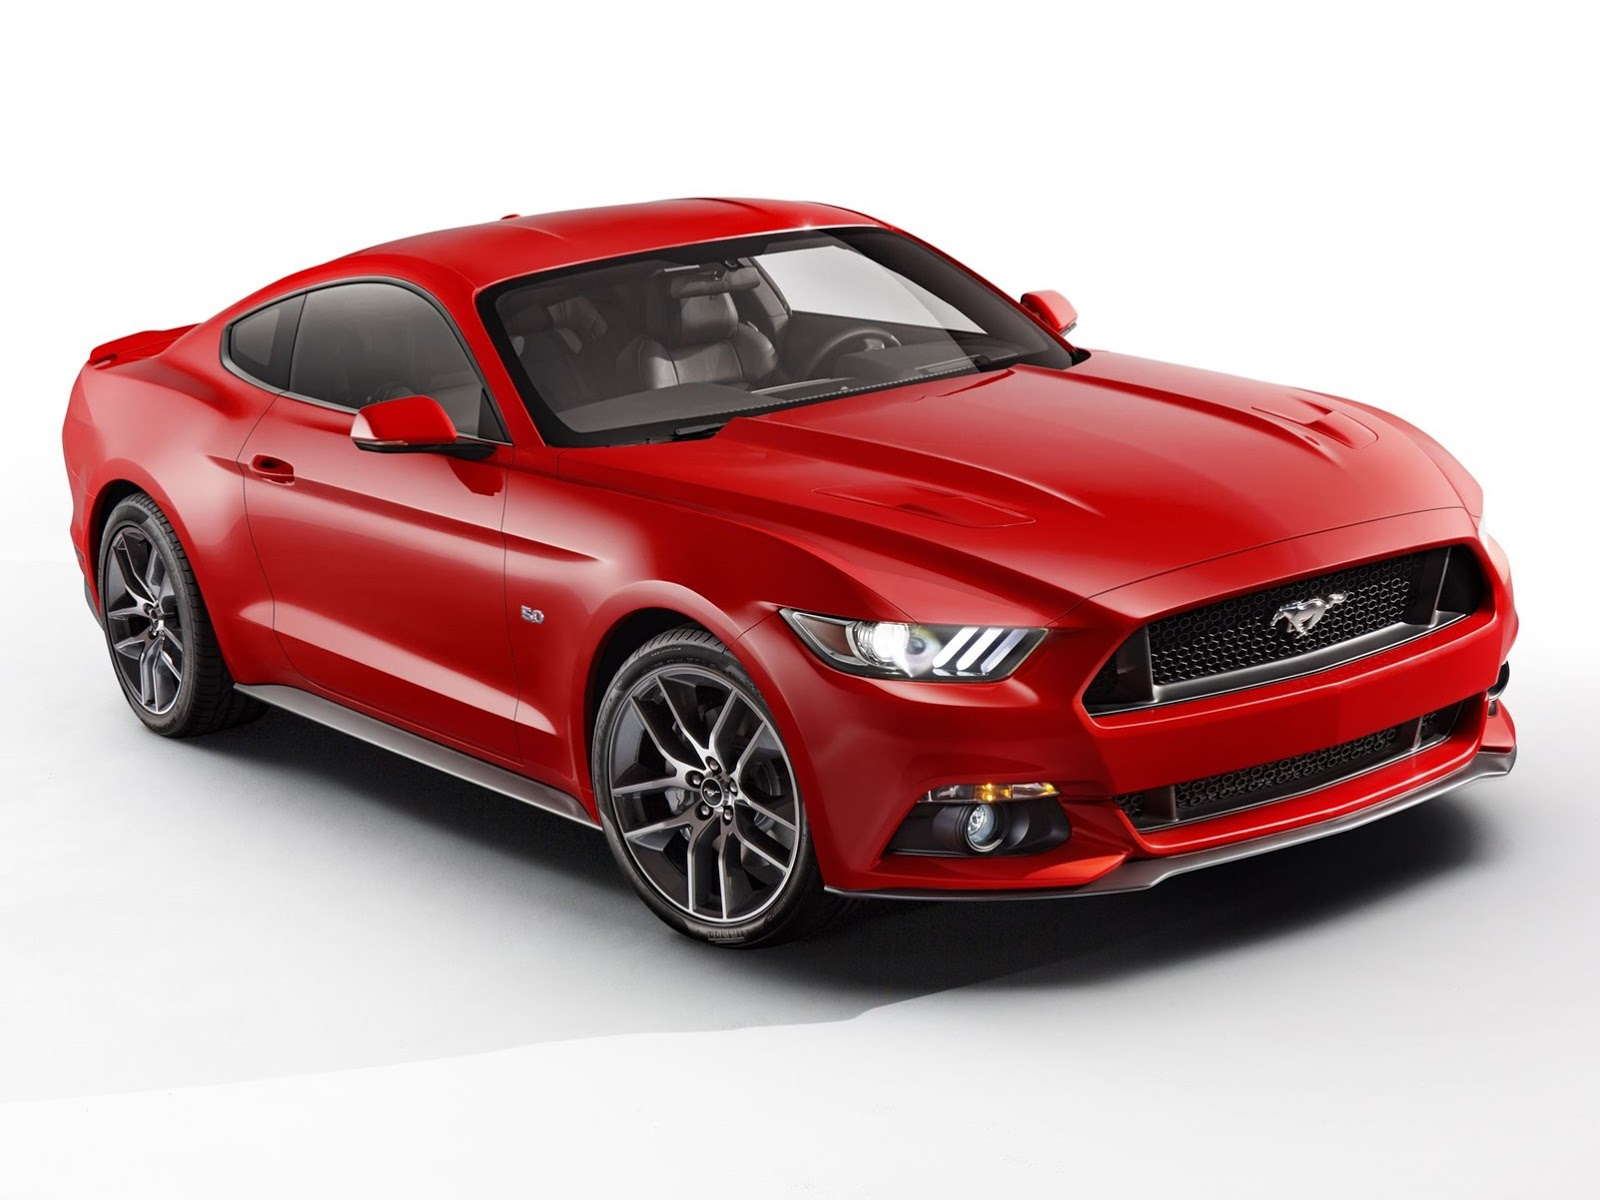 2014 - [Ford] Mustang VII - Page 6 2015-Ford-Mustang-Photos-61%25255B2%25255D